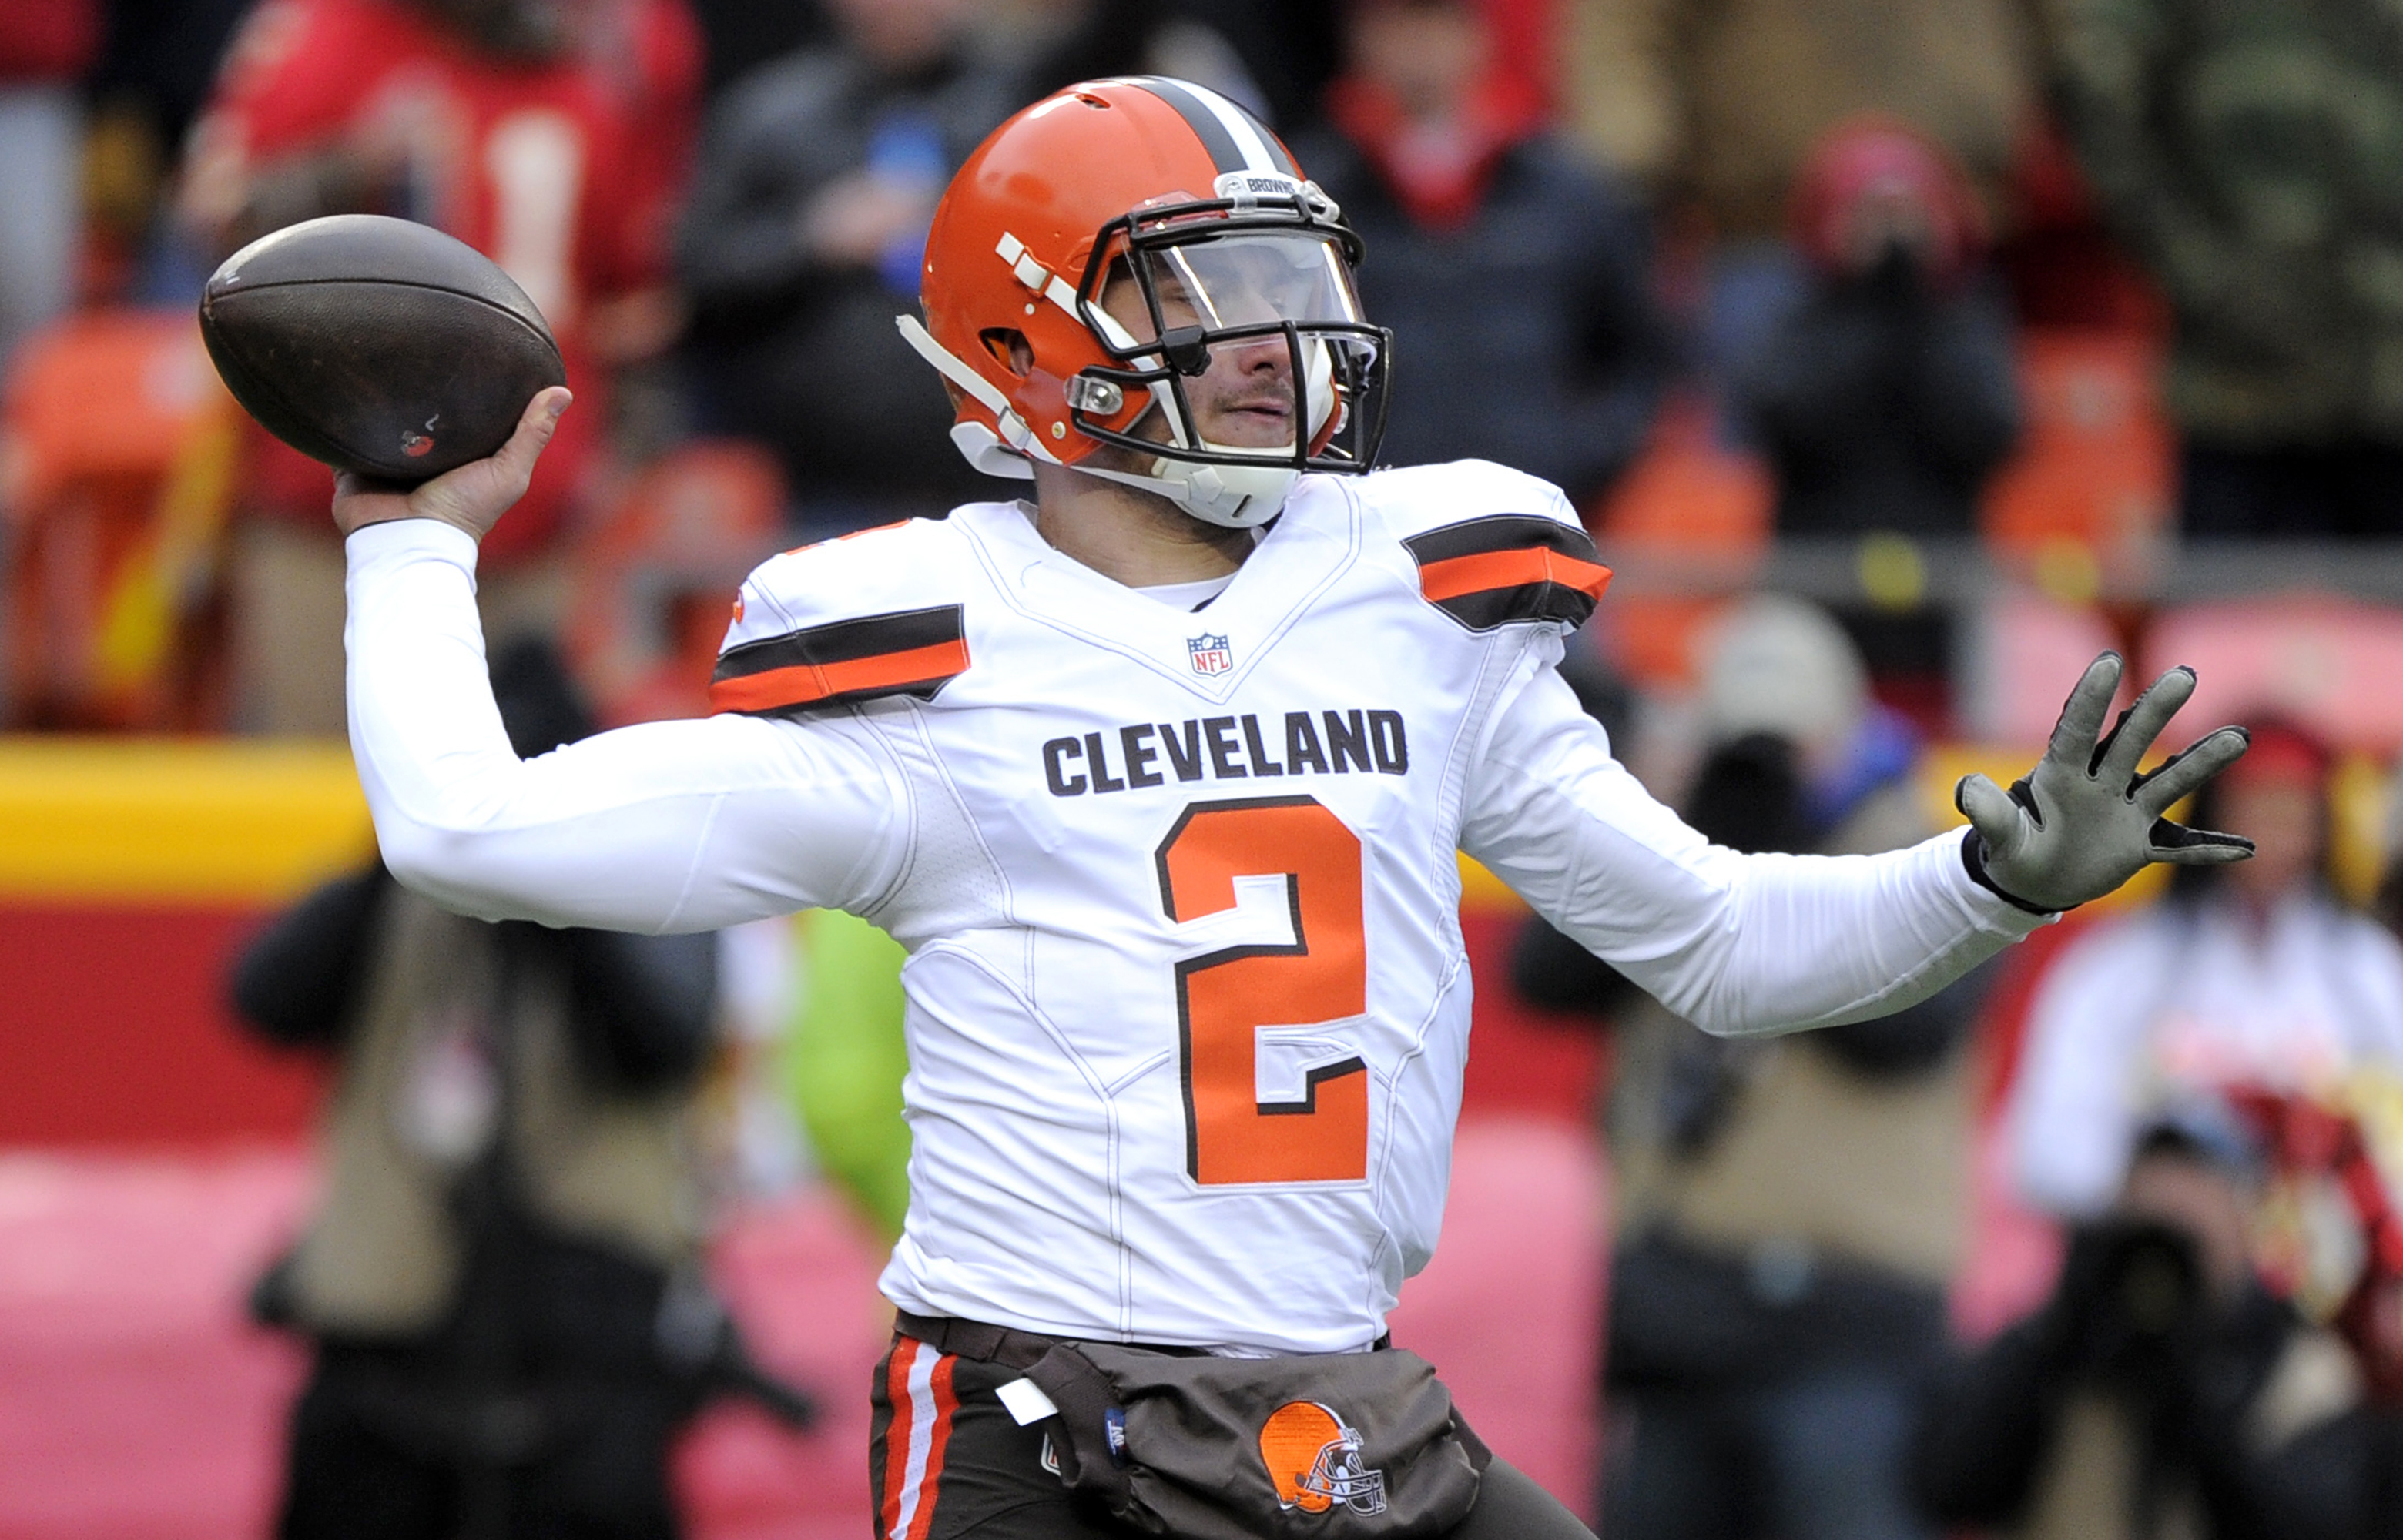 FILE - In this Dec. 27, 2015, file photo, Cleveland Browns quarterback Johnny Manziel (2) throws during the first half of an NFL football game against the Kansas City Chiefs in Kansas City, Mo. Manziel's footwork, decision making and grasp of a pro offens